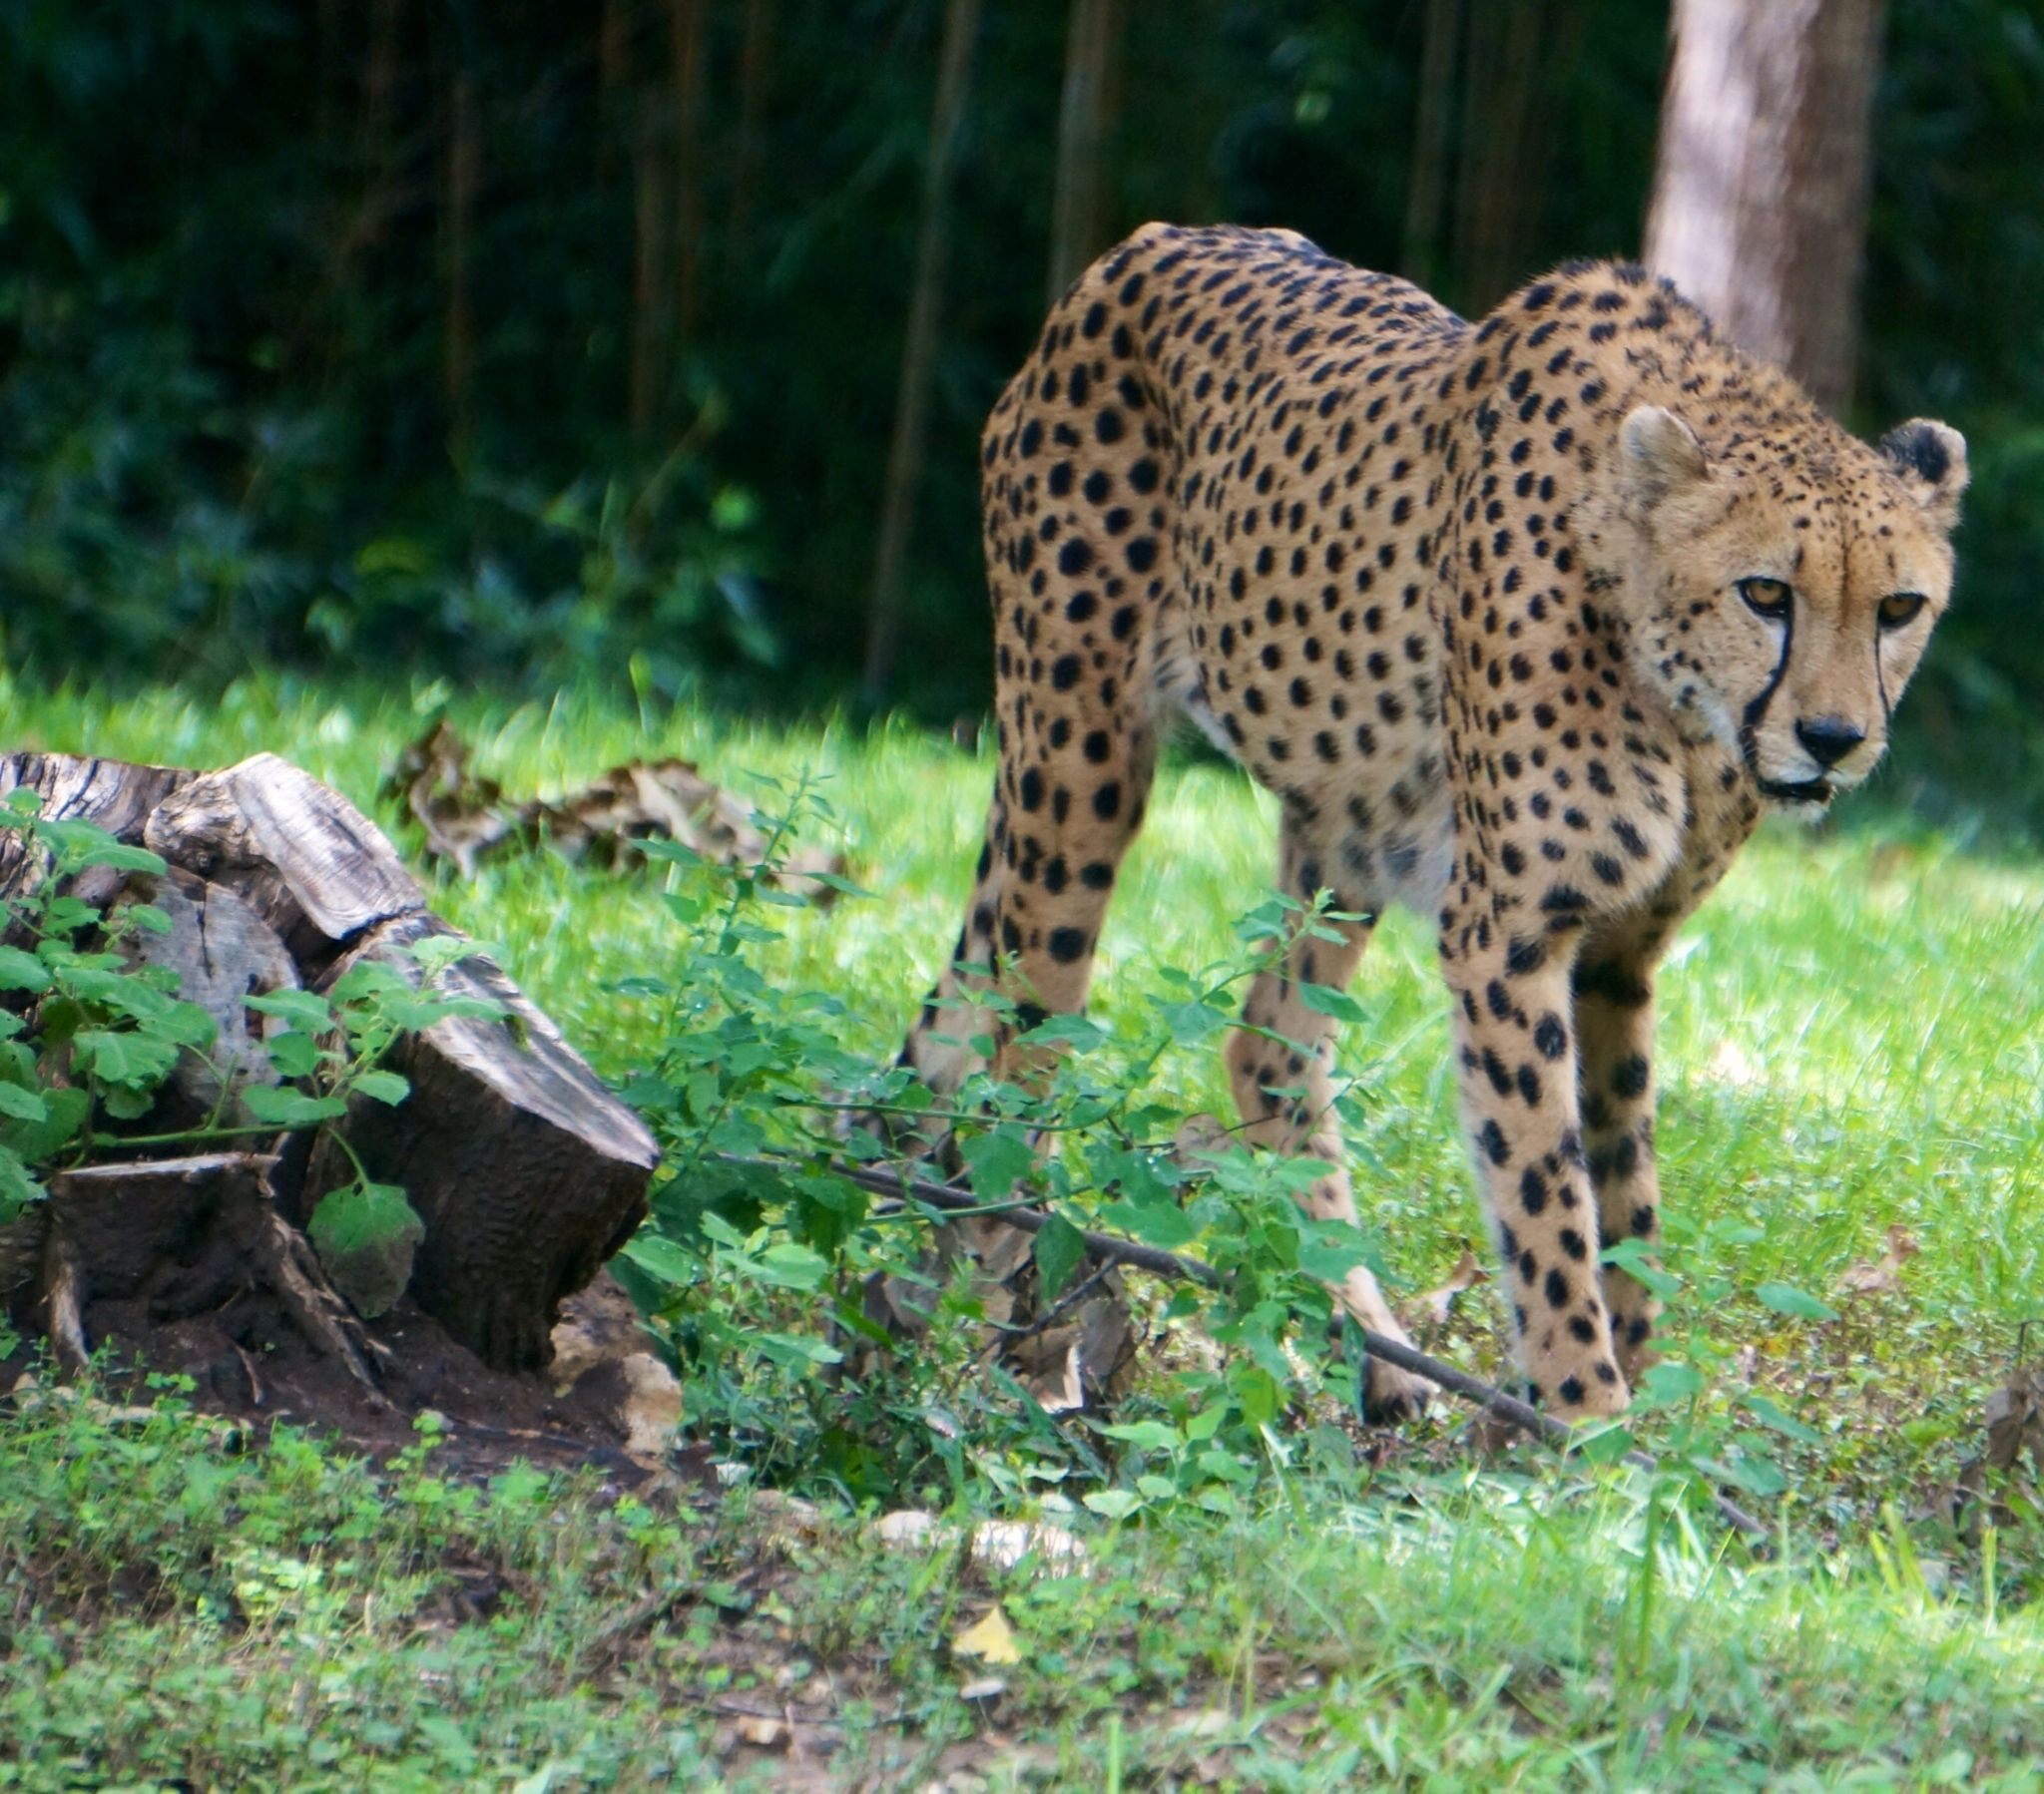 Rules aren't for Cheetahs by craig